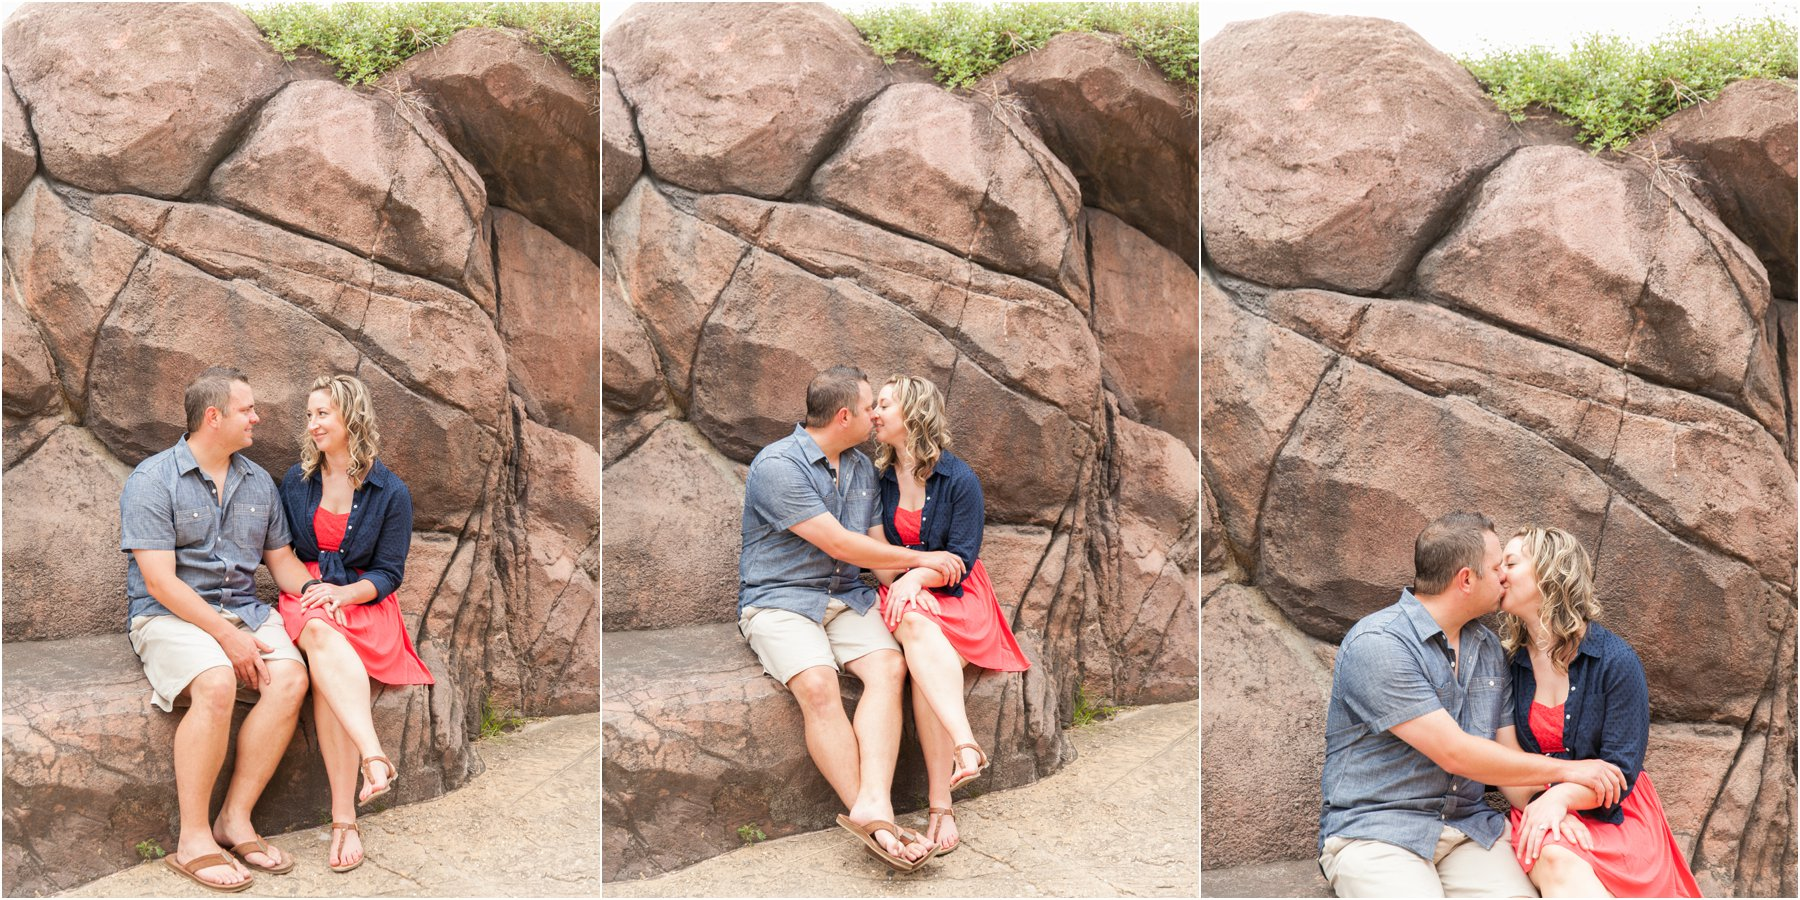 Nofolk_Zoo_engagement_photography_virginia_Jessica_ryan_photography_0136